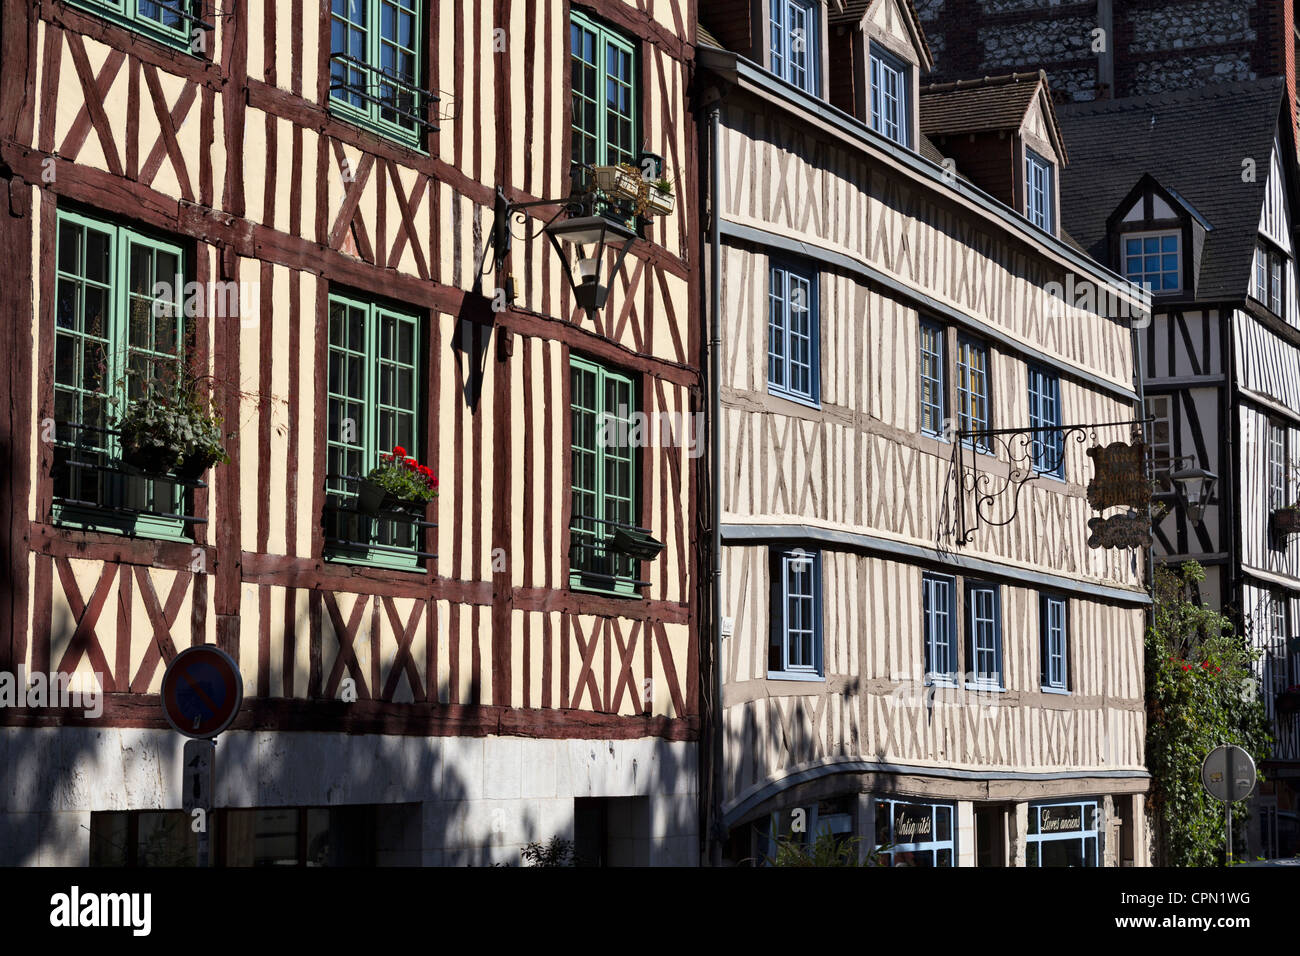 Half-timbered houses in Rouen, France - Stock Image